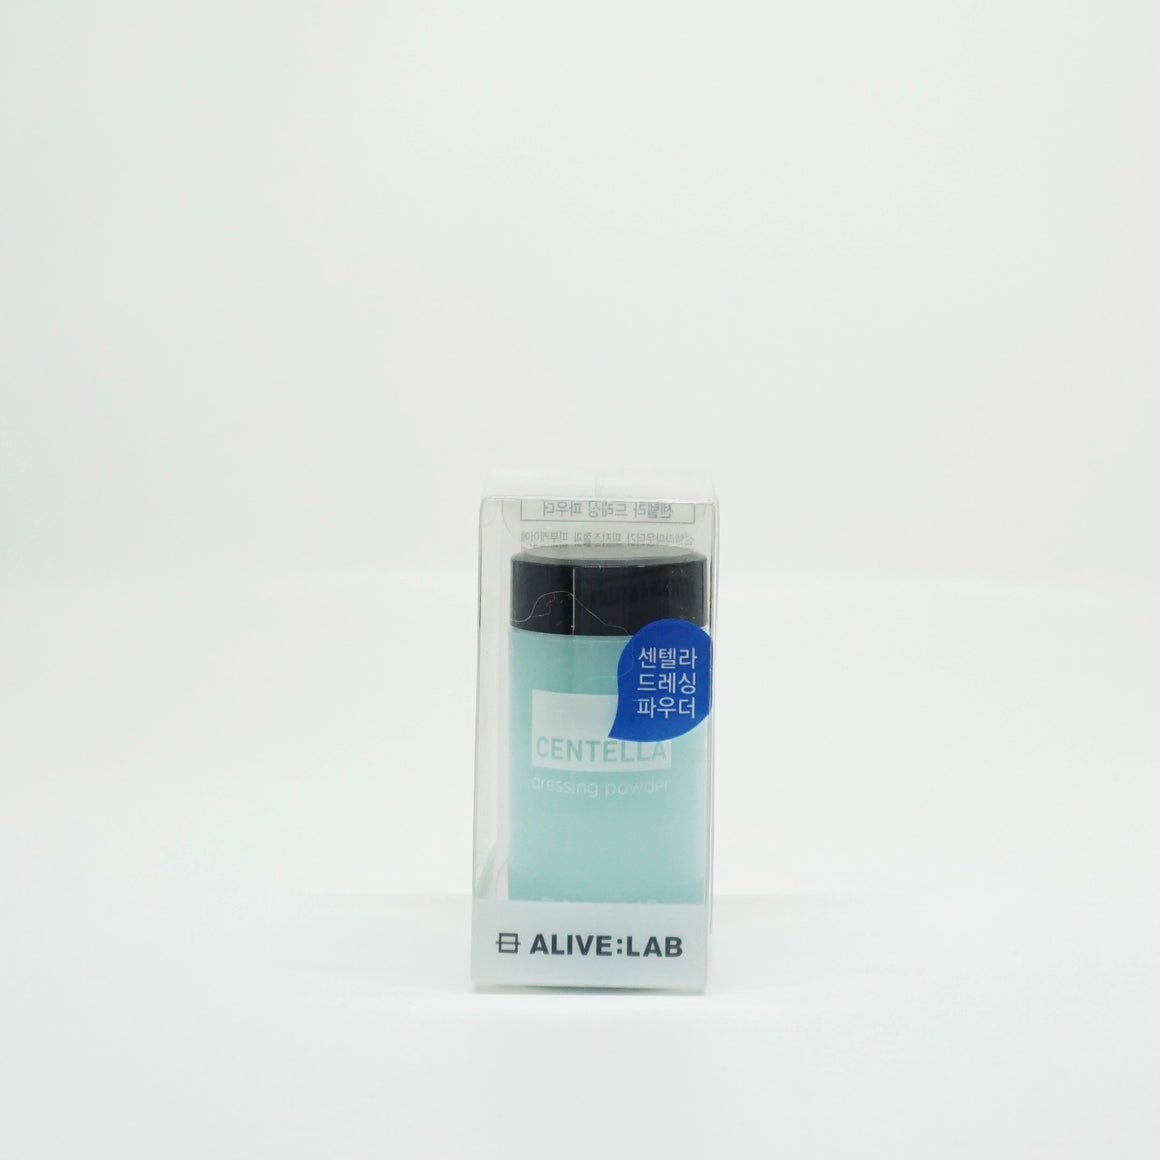 ALIVE:LAB Centella Dressing Powder